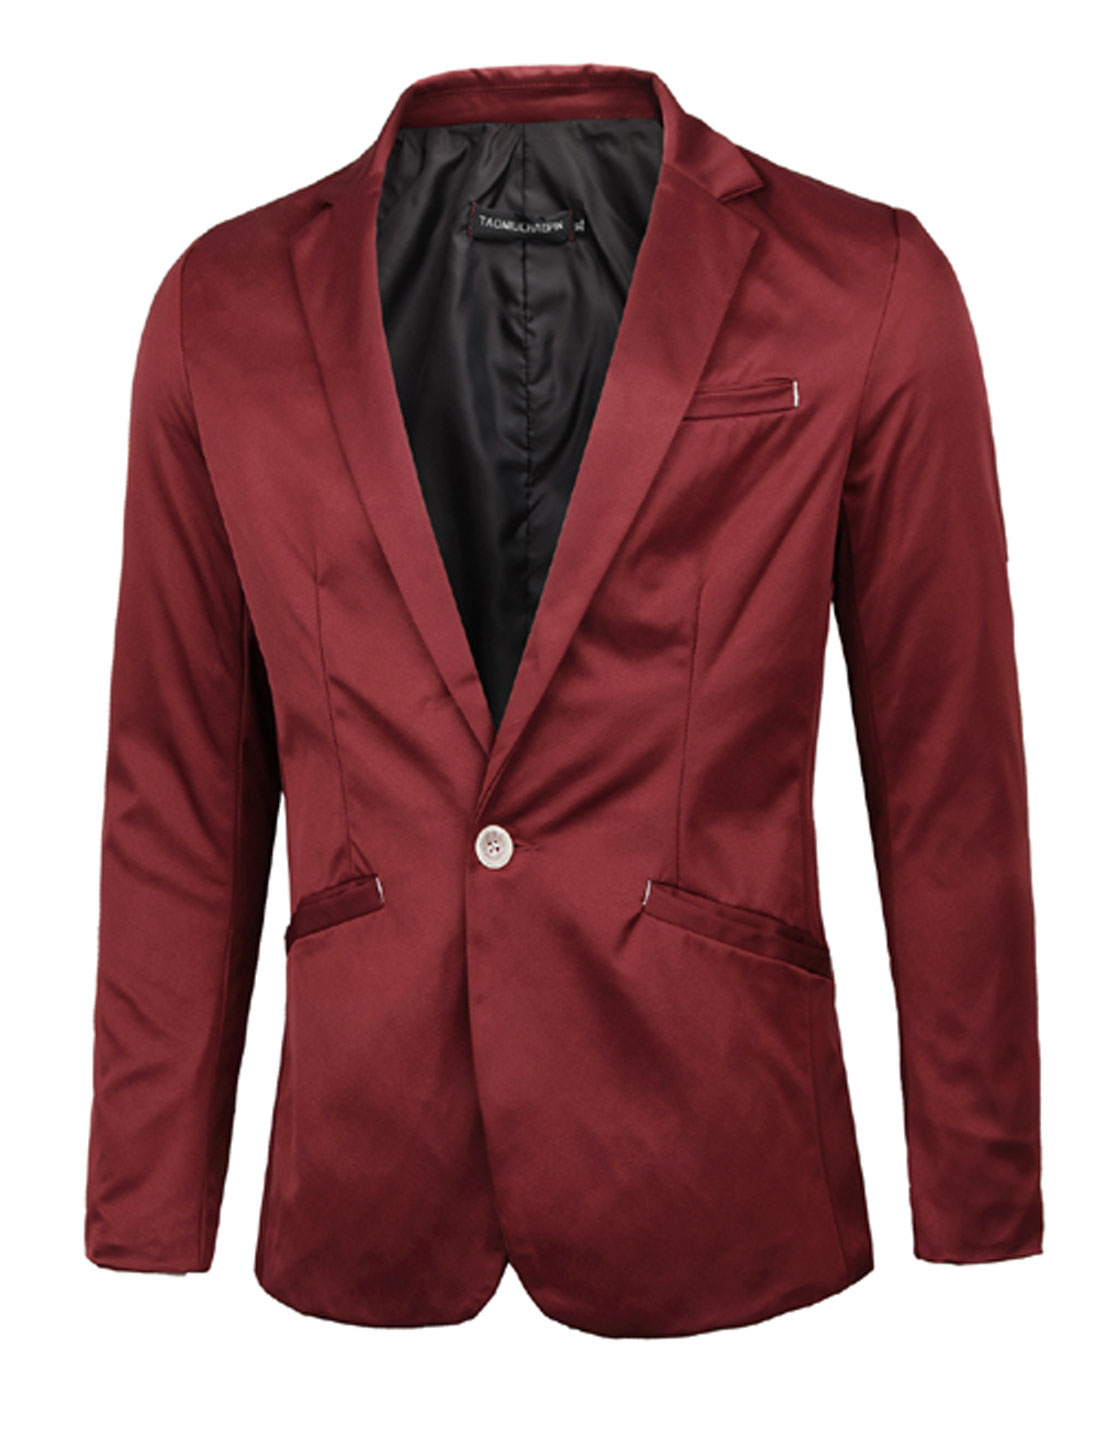 Man One Button Front Full Sleeve Slim Fit Burgundy Blazer Jacket M